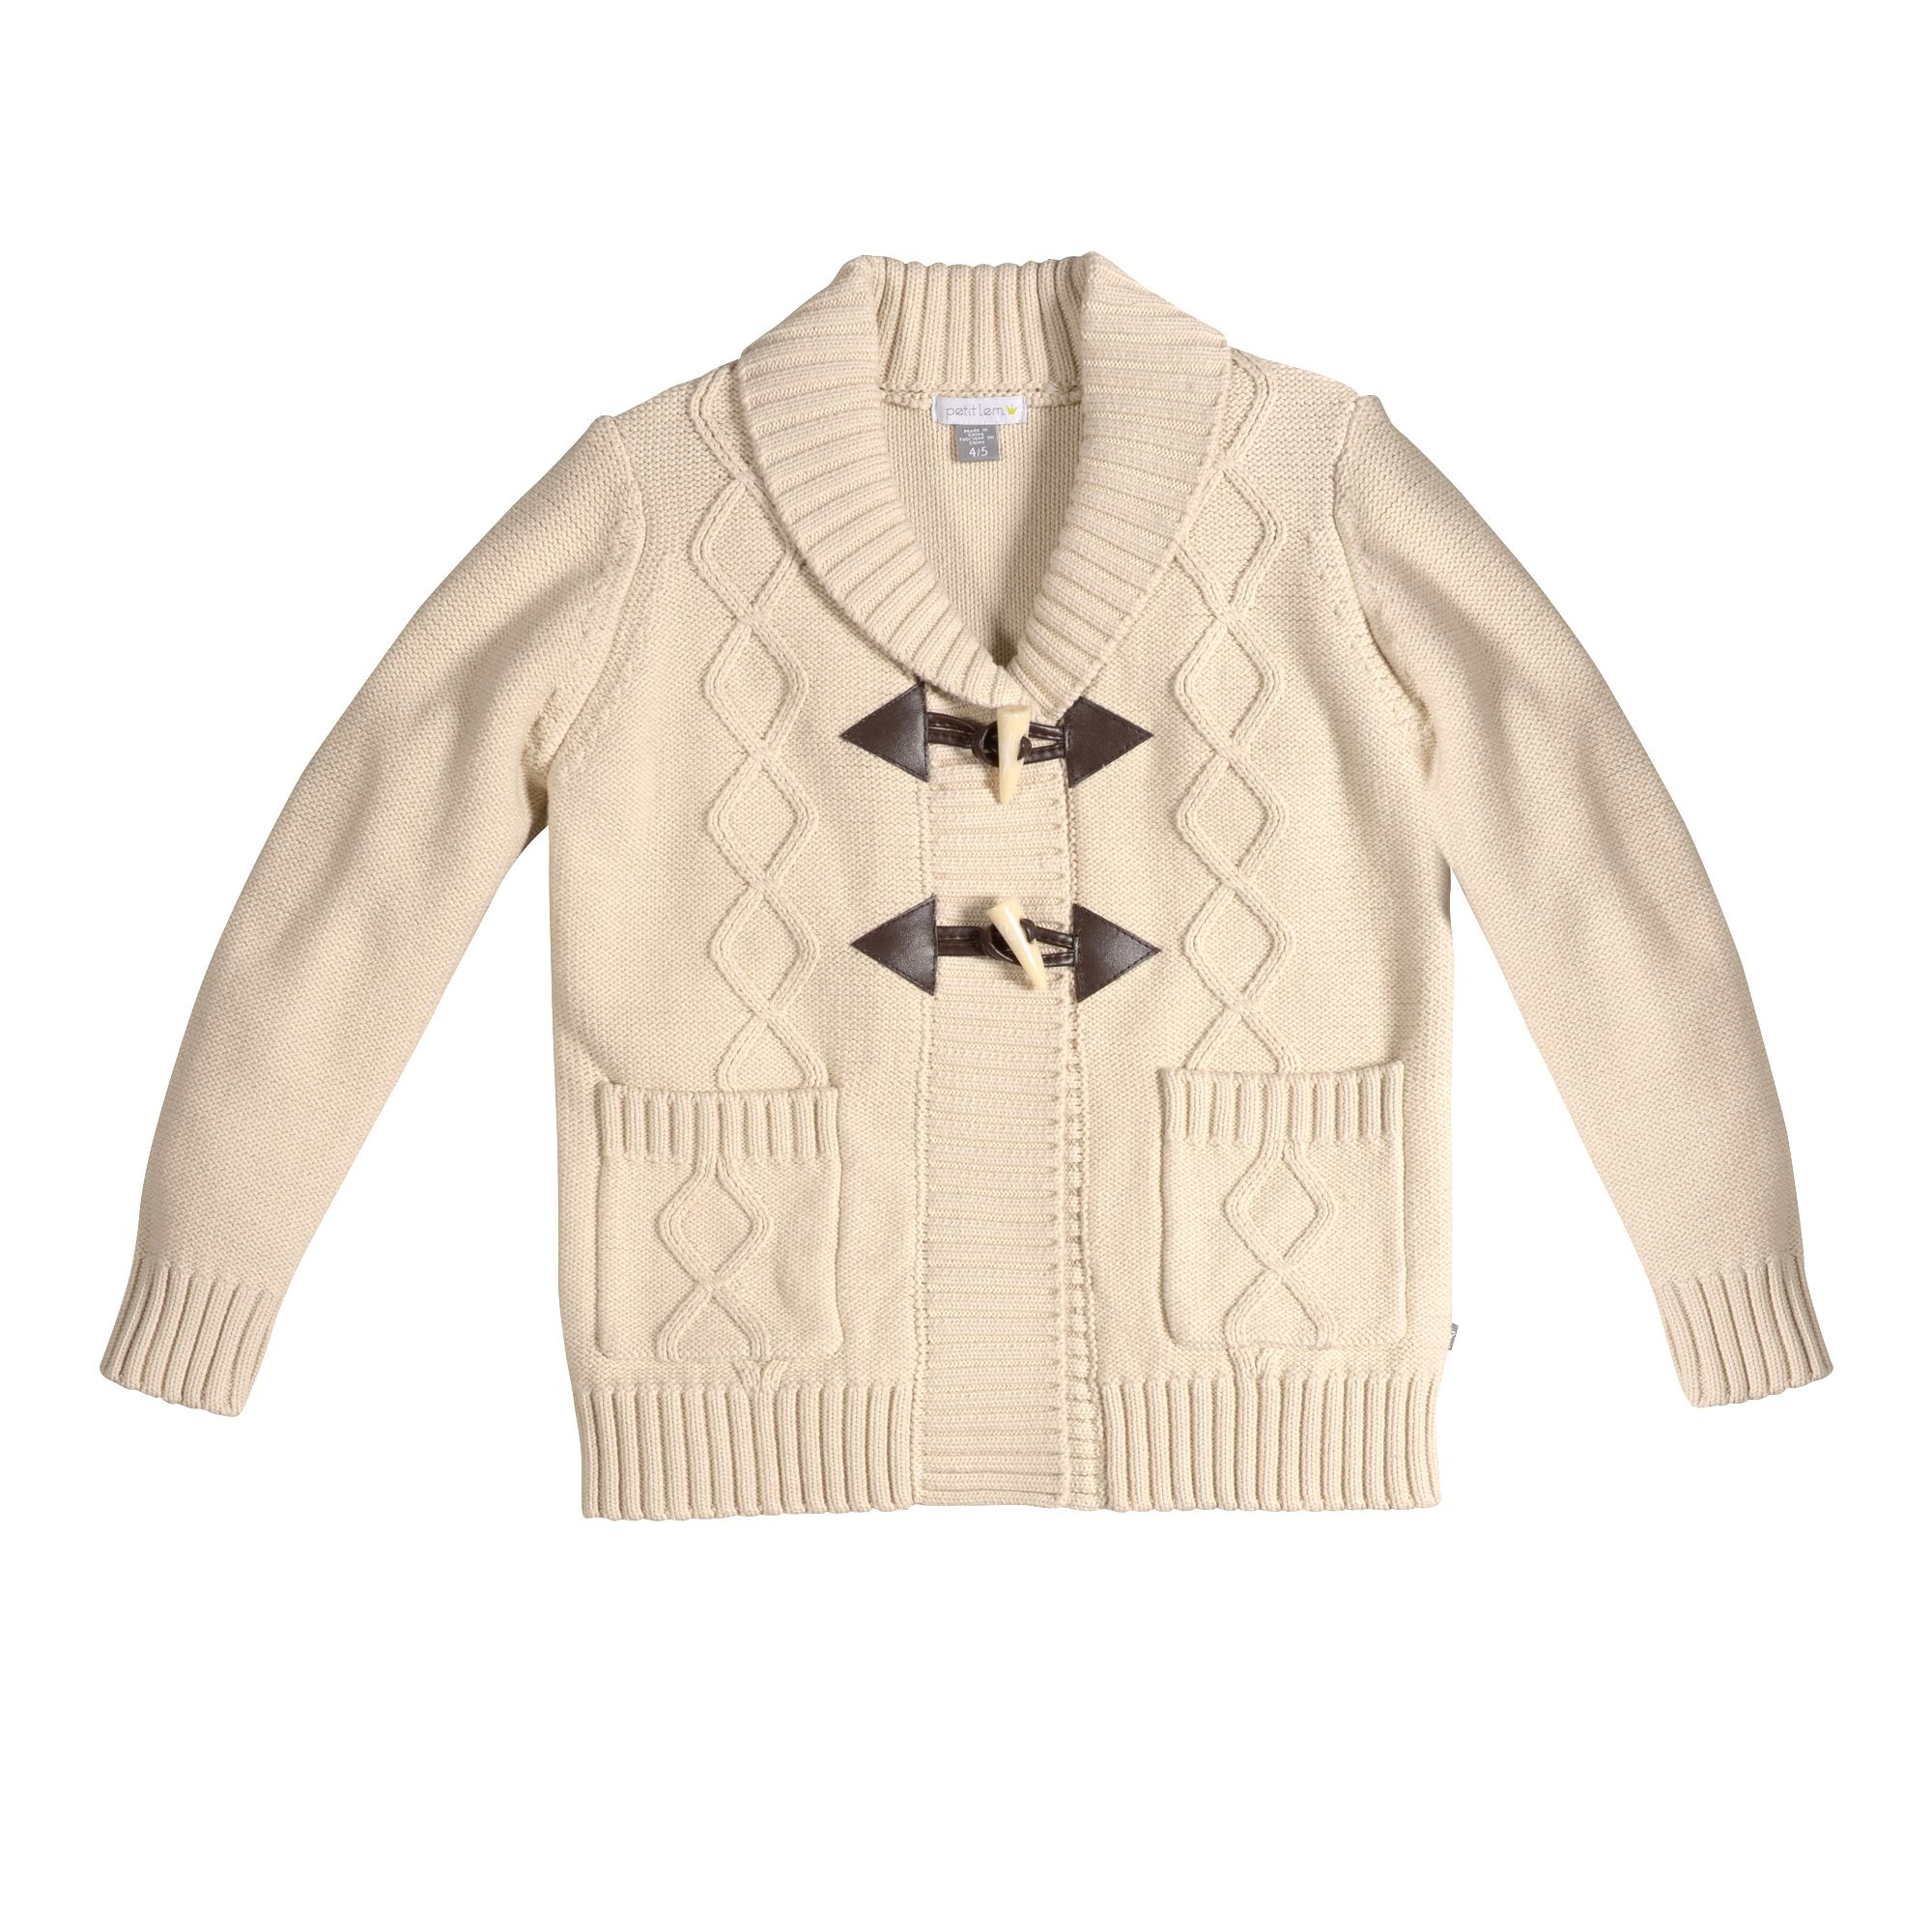 a48c529b159 Petit Lem 2014 2015 Fall Winter Collection. Jet Set collection. Stylish and  trendy beige cable knit sweater with a V-neck collar and faux brown leather  and ...